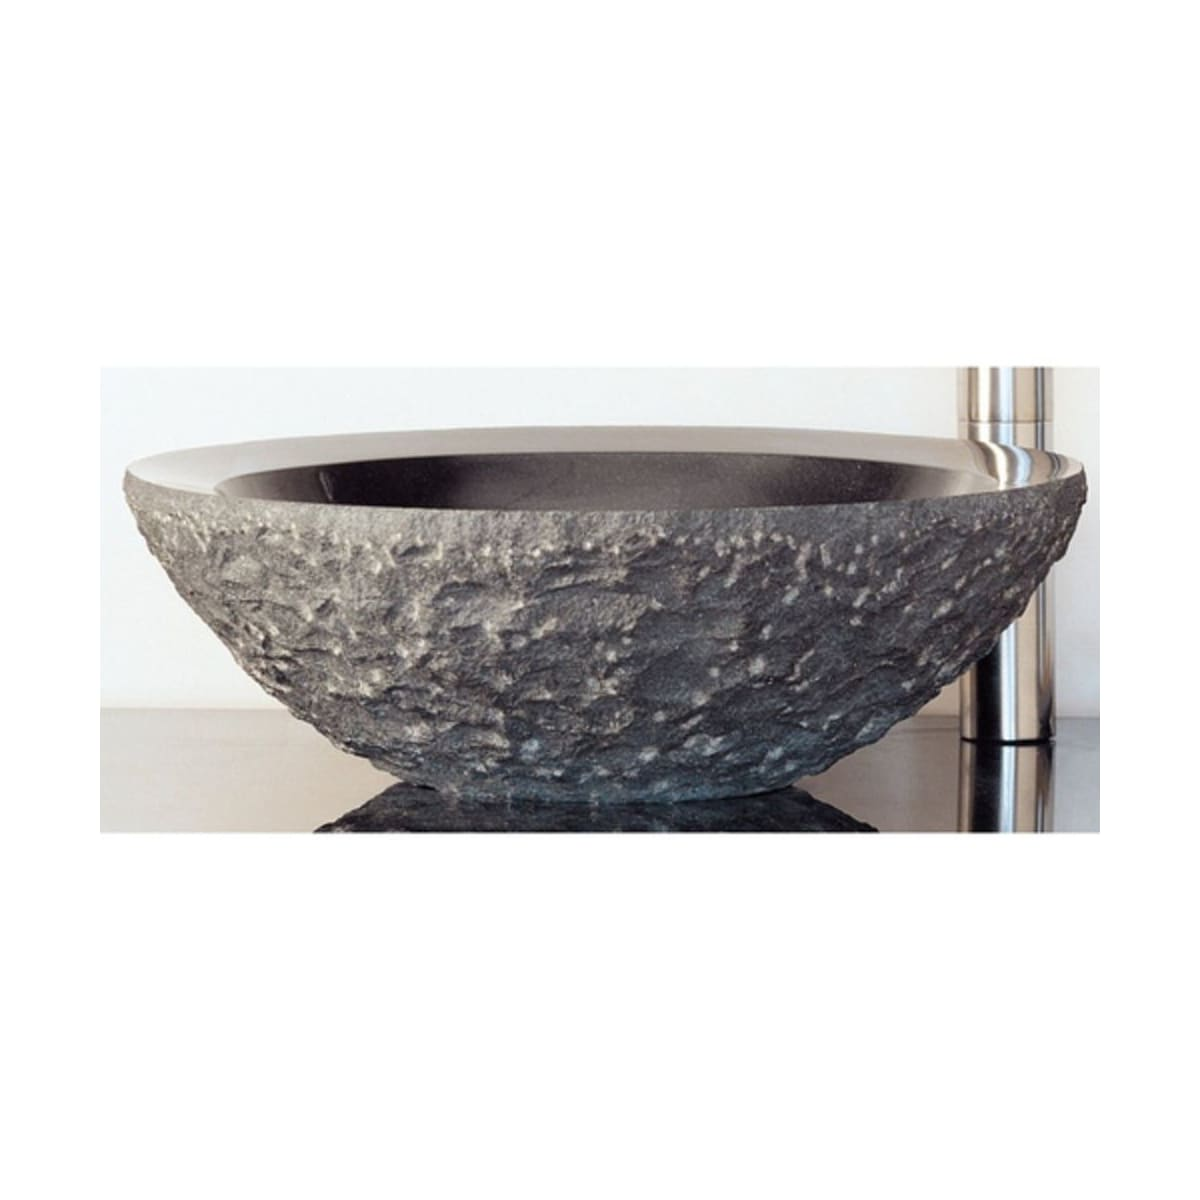 Stone Forest C25 Hb Honed Basalt Stone Bathroom Sink Faucet Com